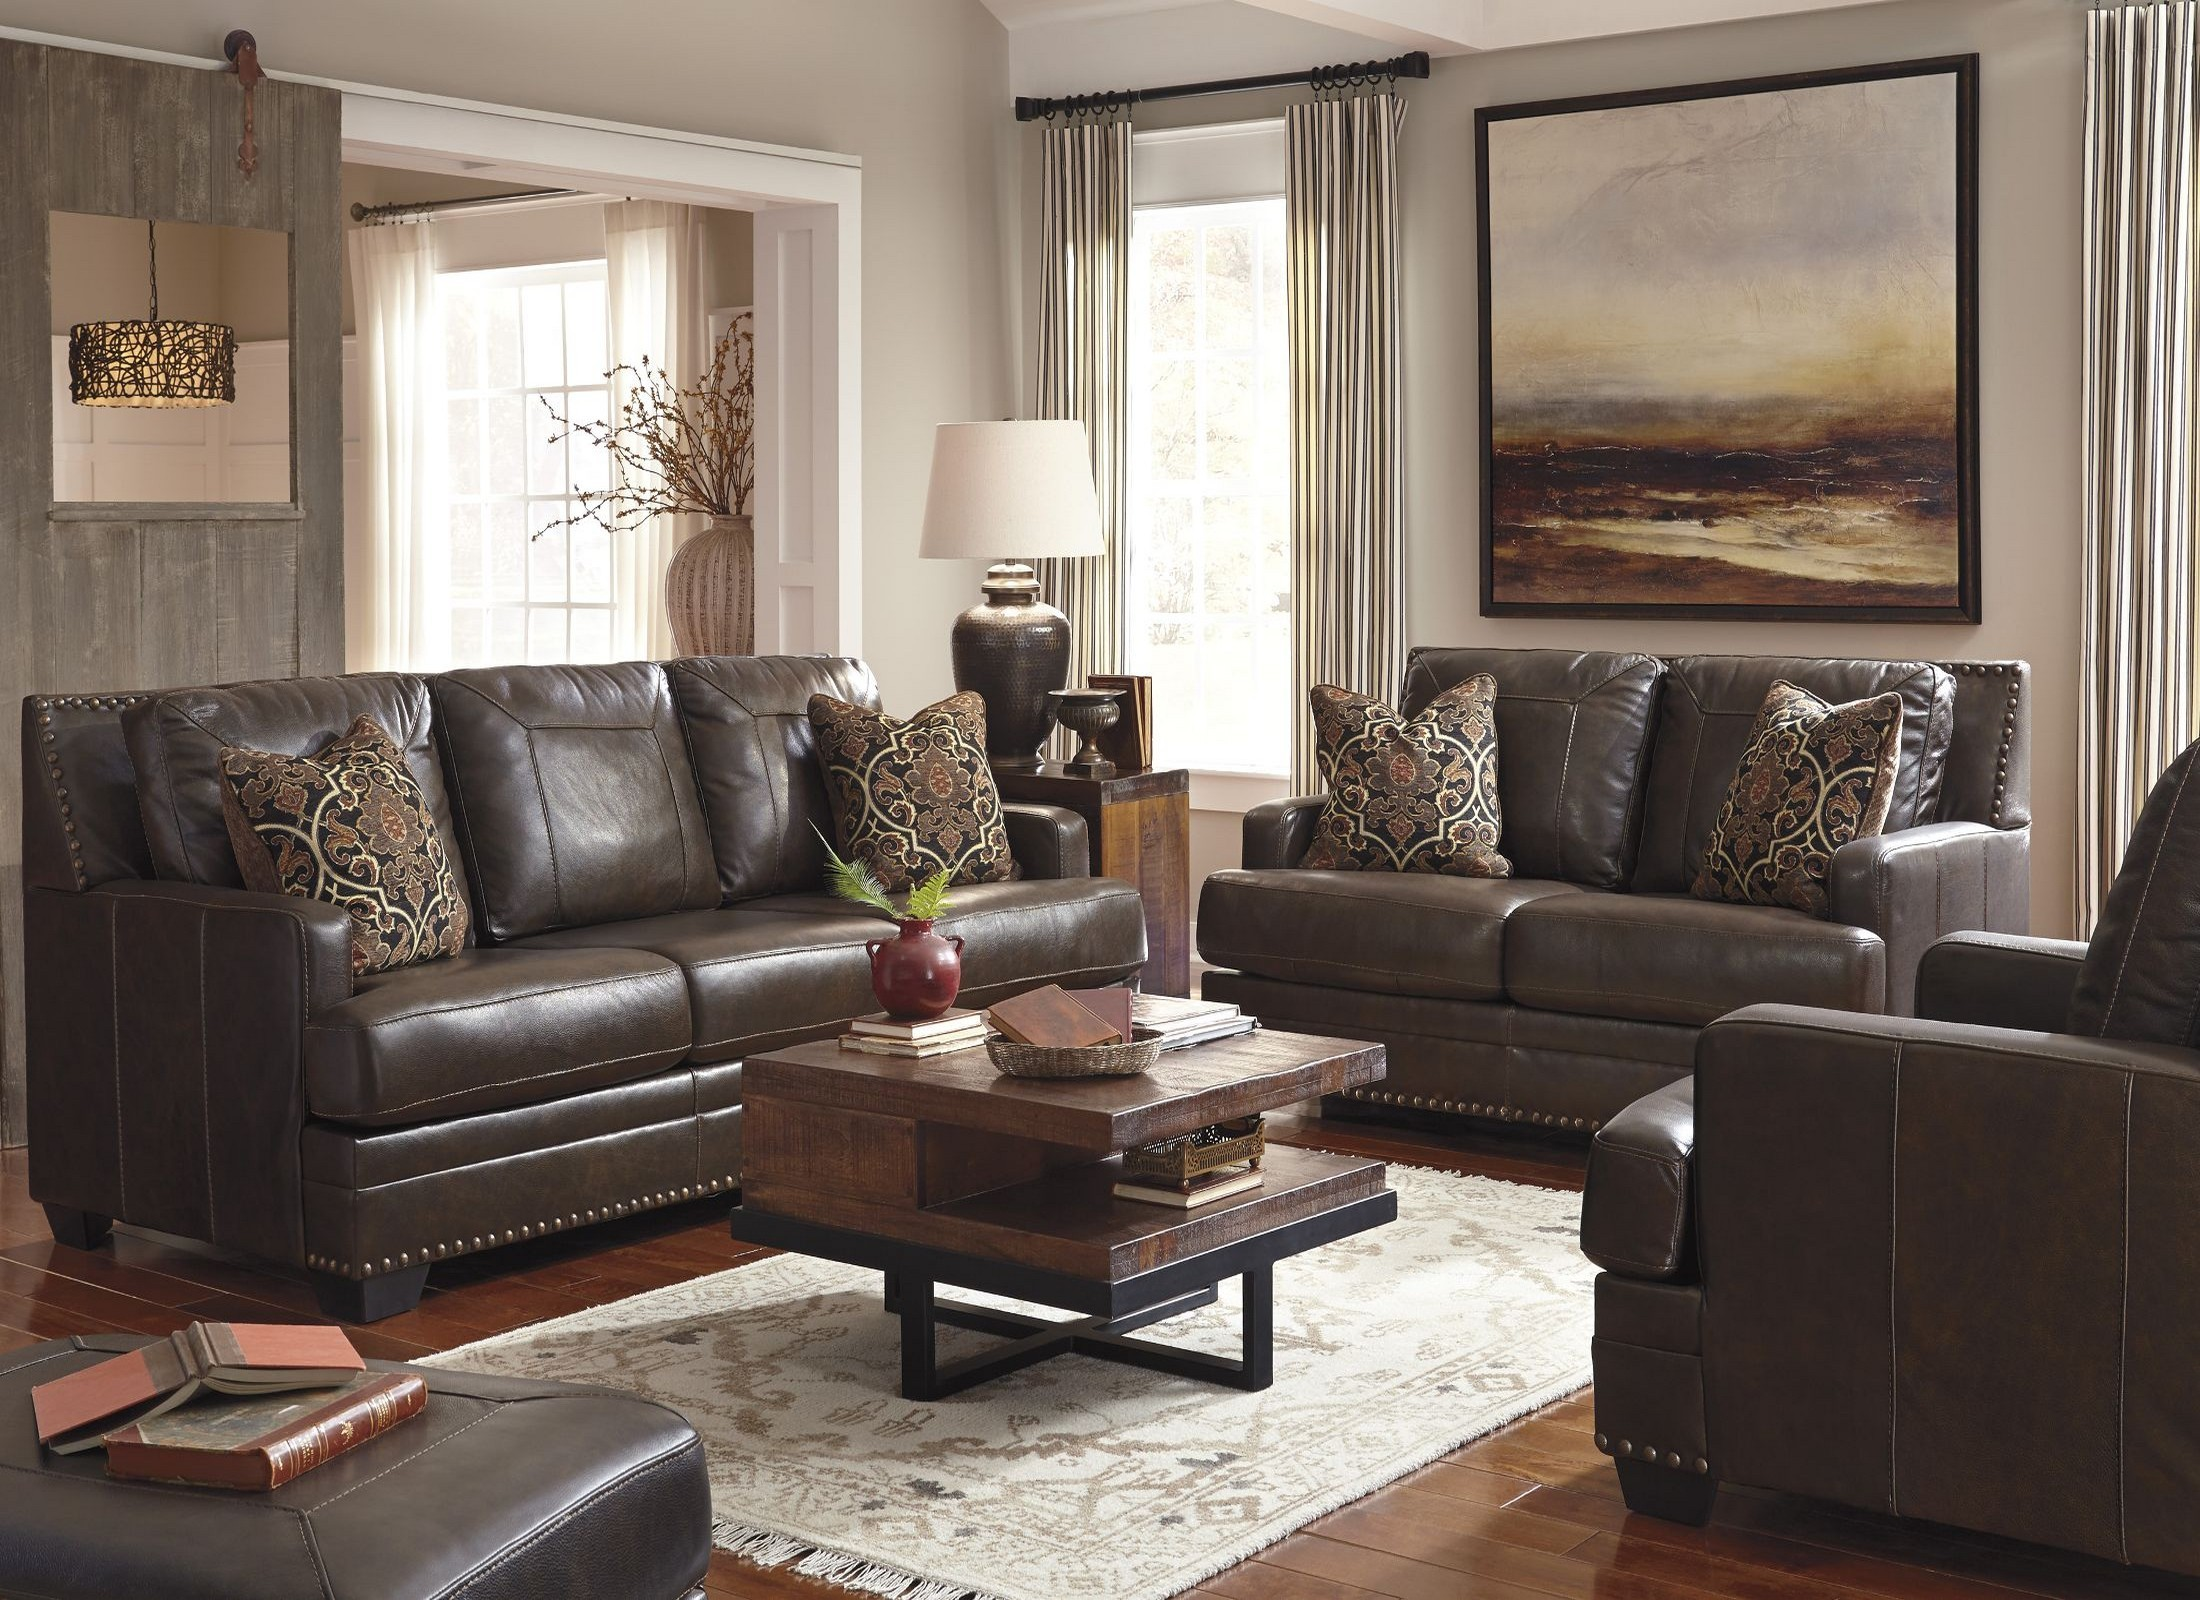 Corvan Antique Living Room Set from Ashley (6910338